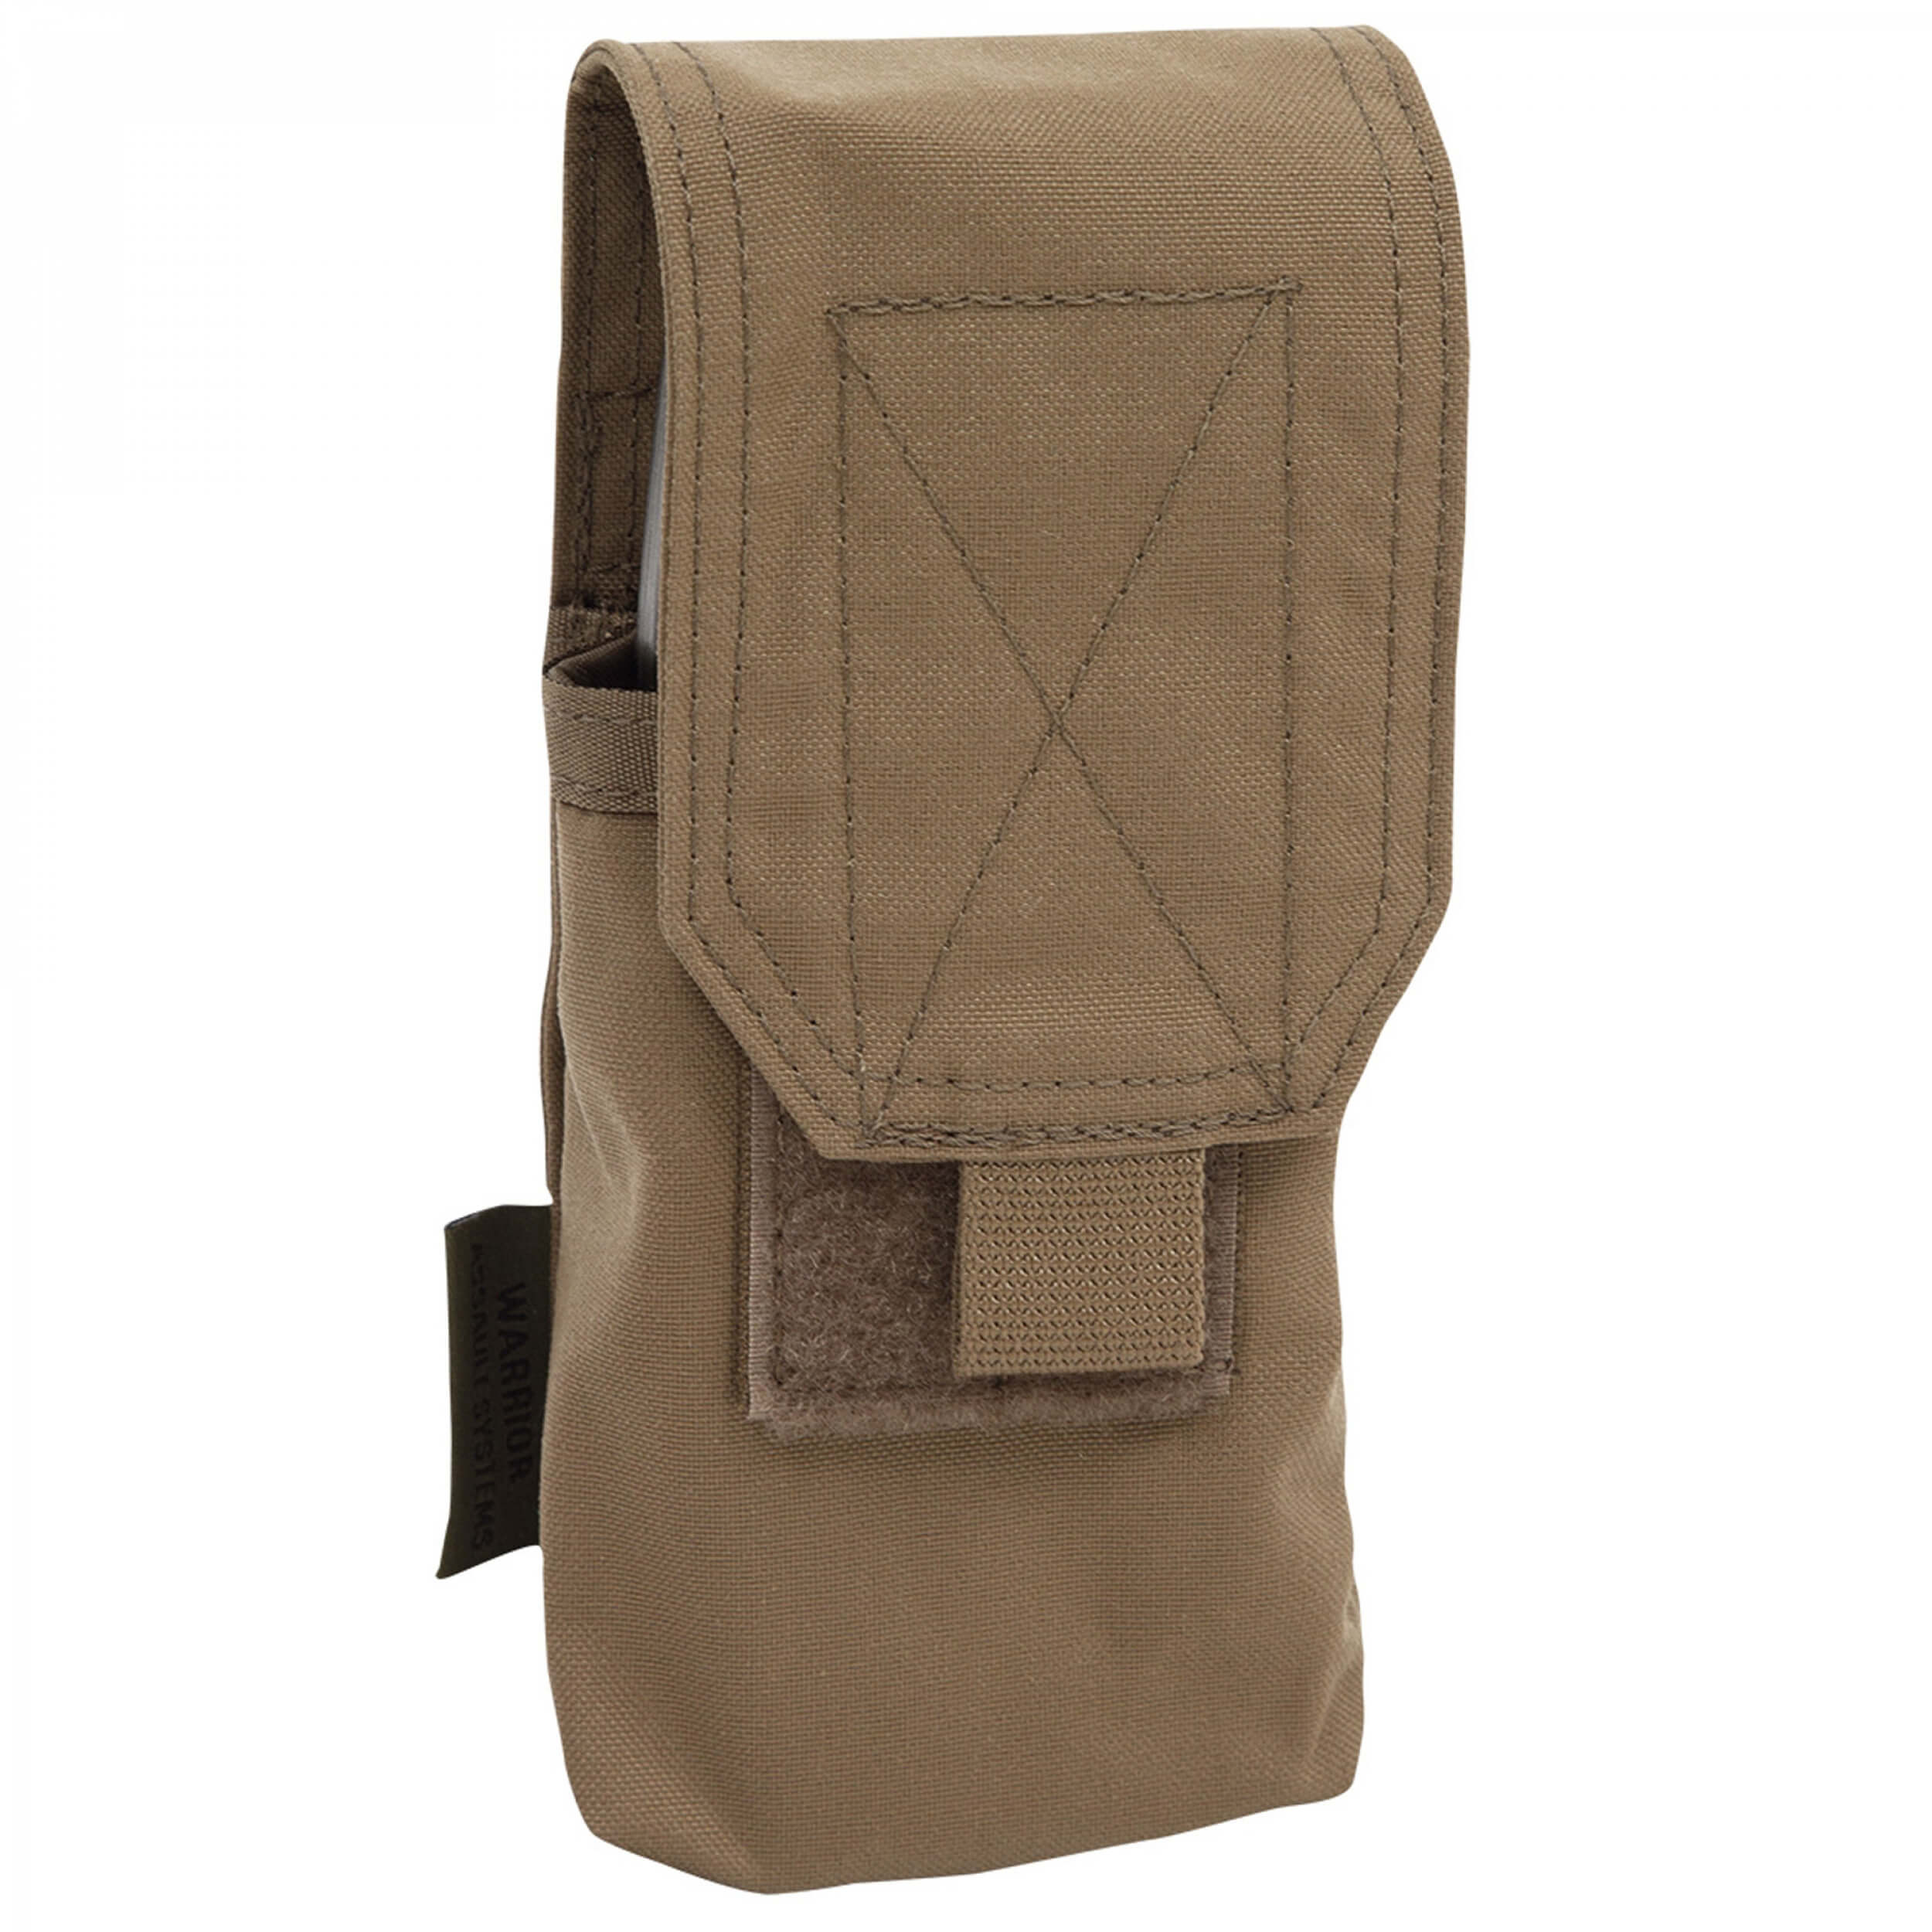 Warrior Single Covered G36 MAG Pouch coyote